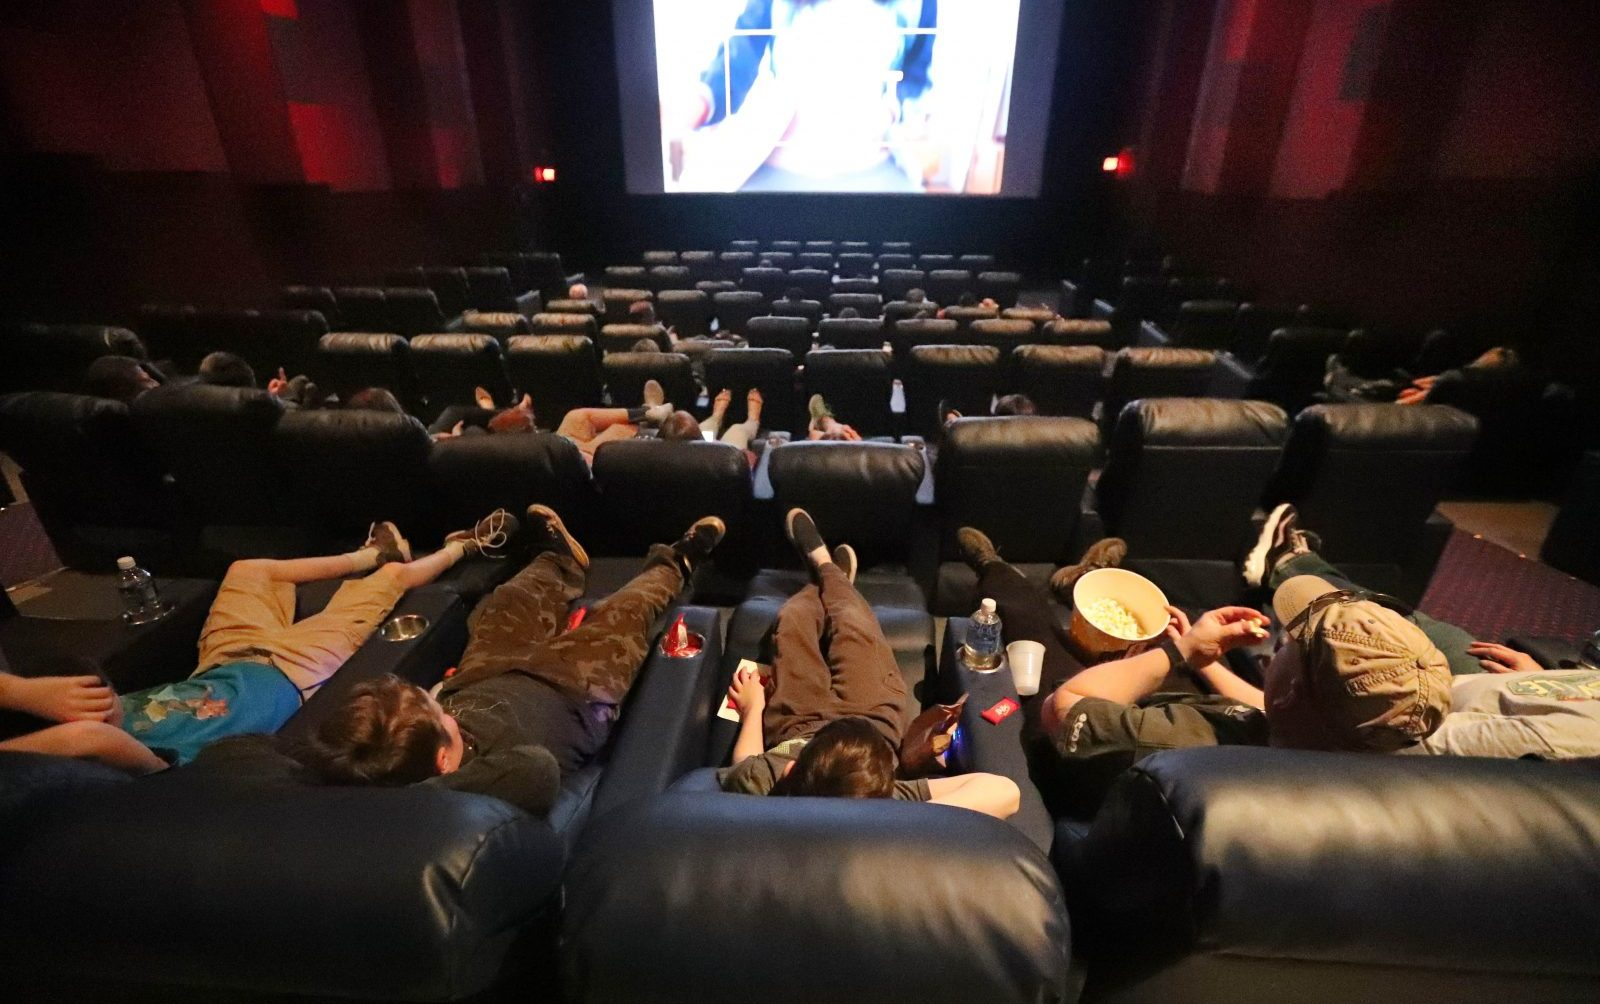 Dipson McKinley Mall has reduced price movie tickets, yet still offers plush recliner chairs.   (Sharon Cantillon/Buffalo News)